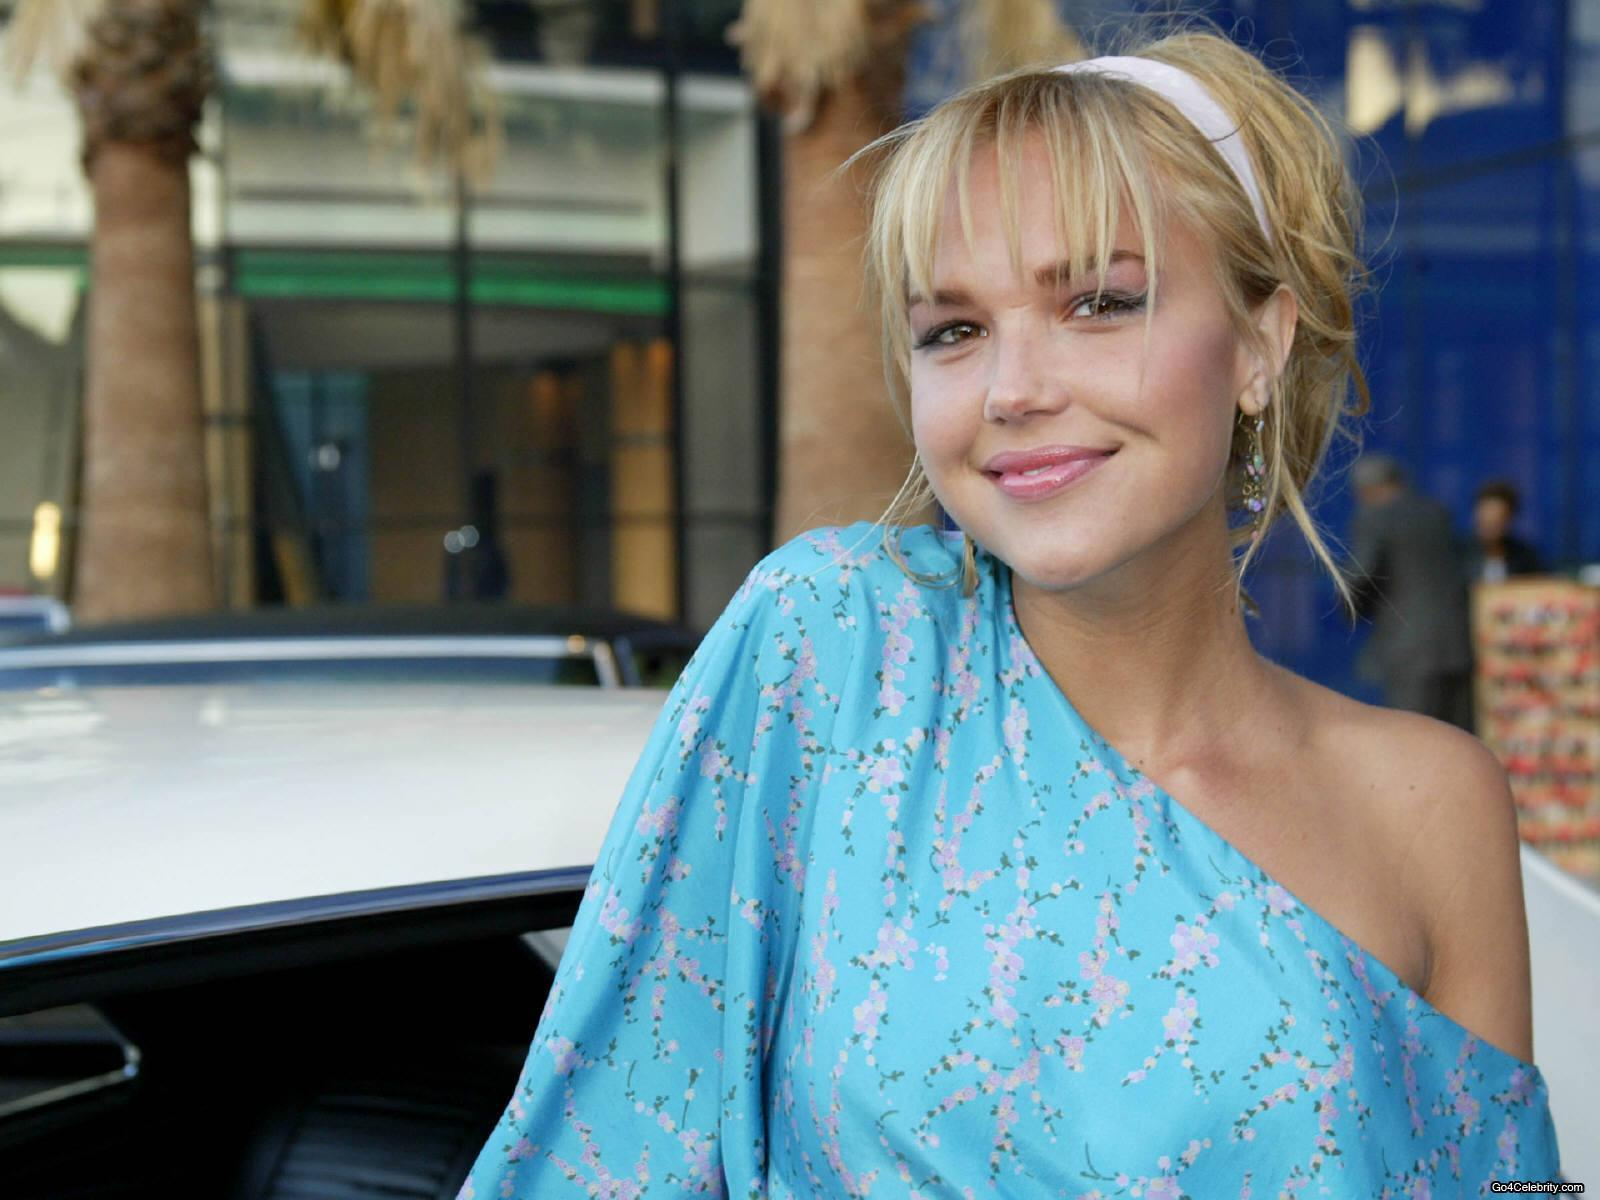 Arielle Kebbel Images Arielle 3 Hd Wallpaper And Background Photos